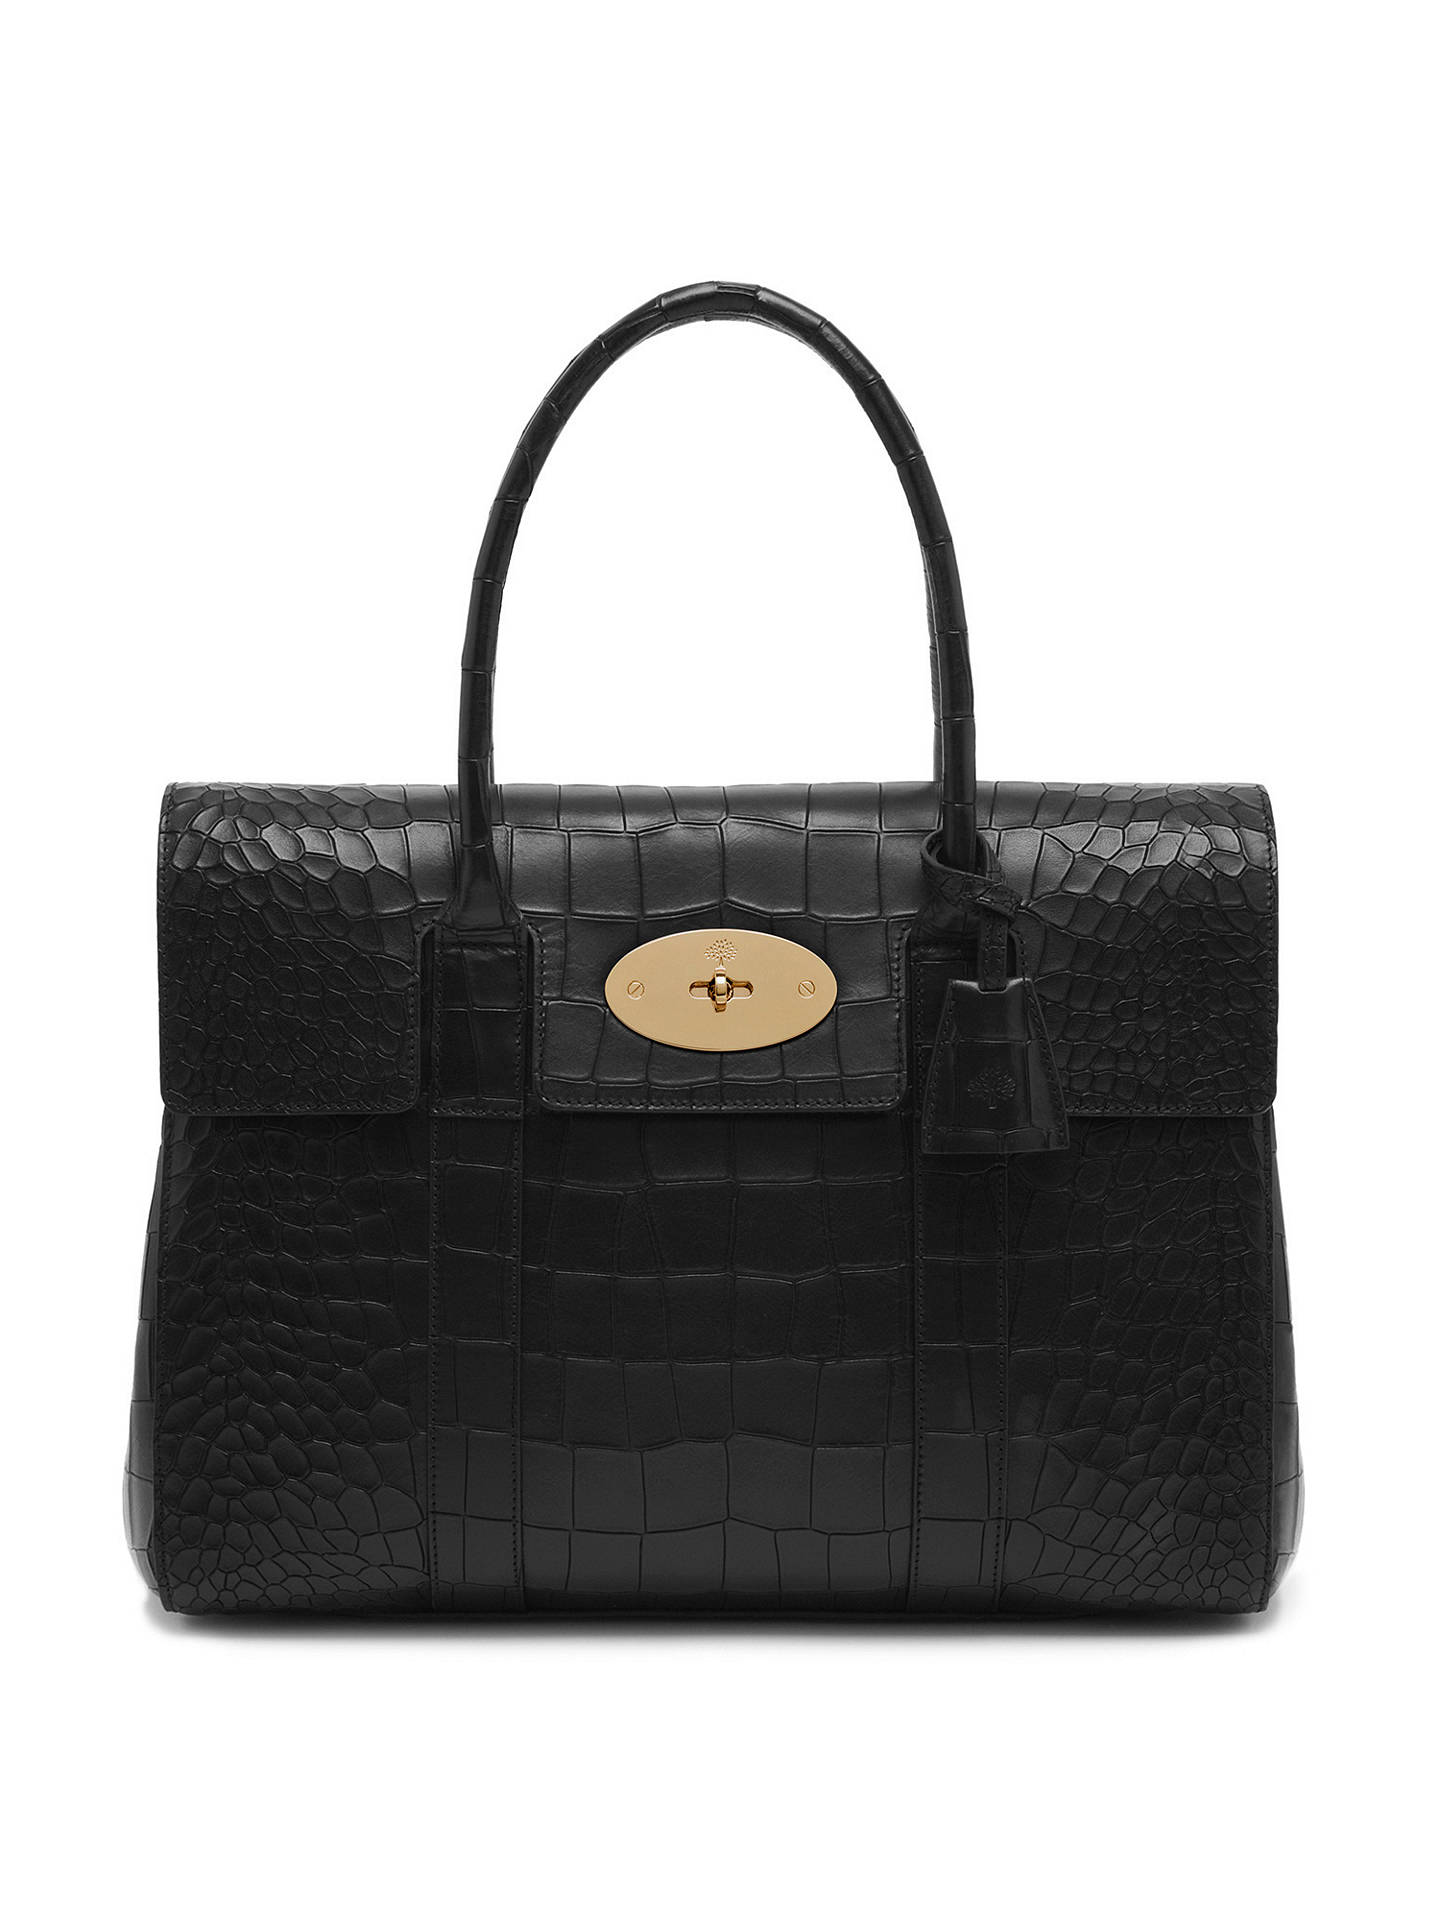 cfd9cd11f9 ... czech buymulberry bayswater leather croc print bag black online at  johnlewis 7007a 7e4d2